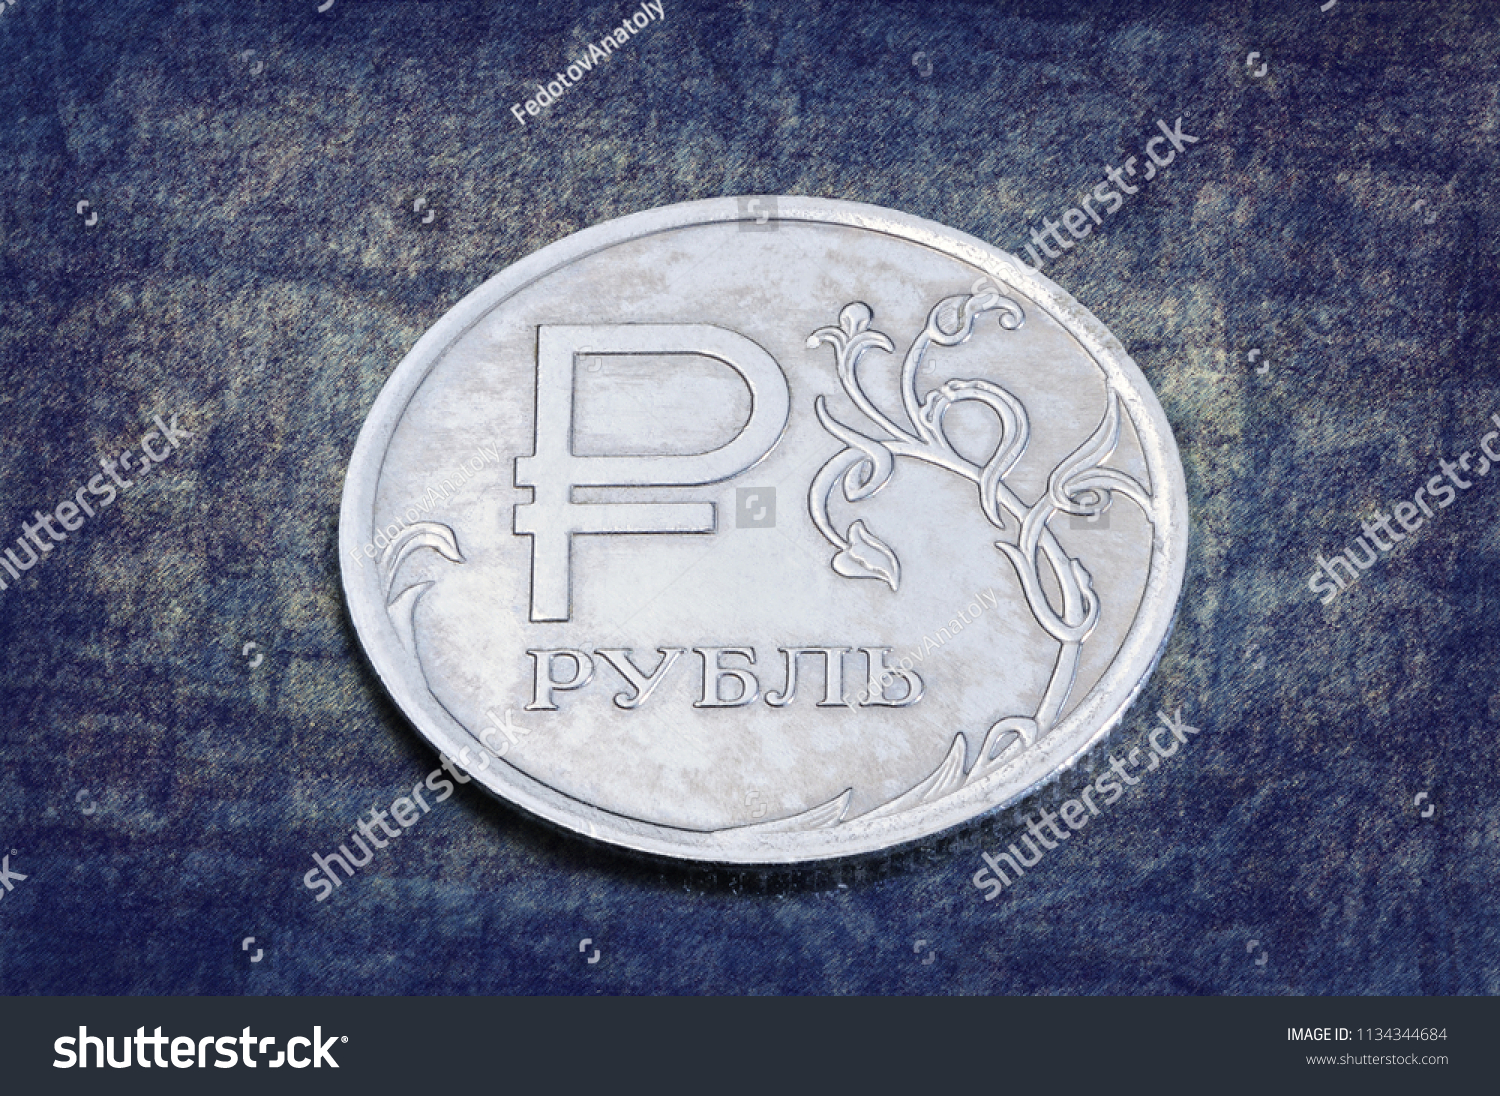 Obverse Coin One Russian Ruble Symbol Stock Photo Royalty Free